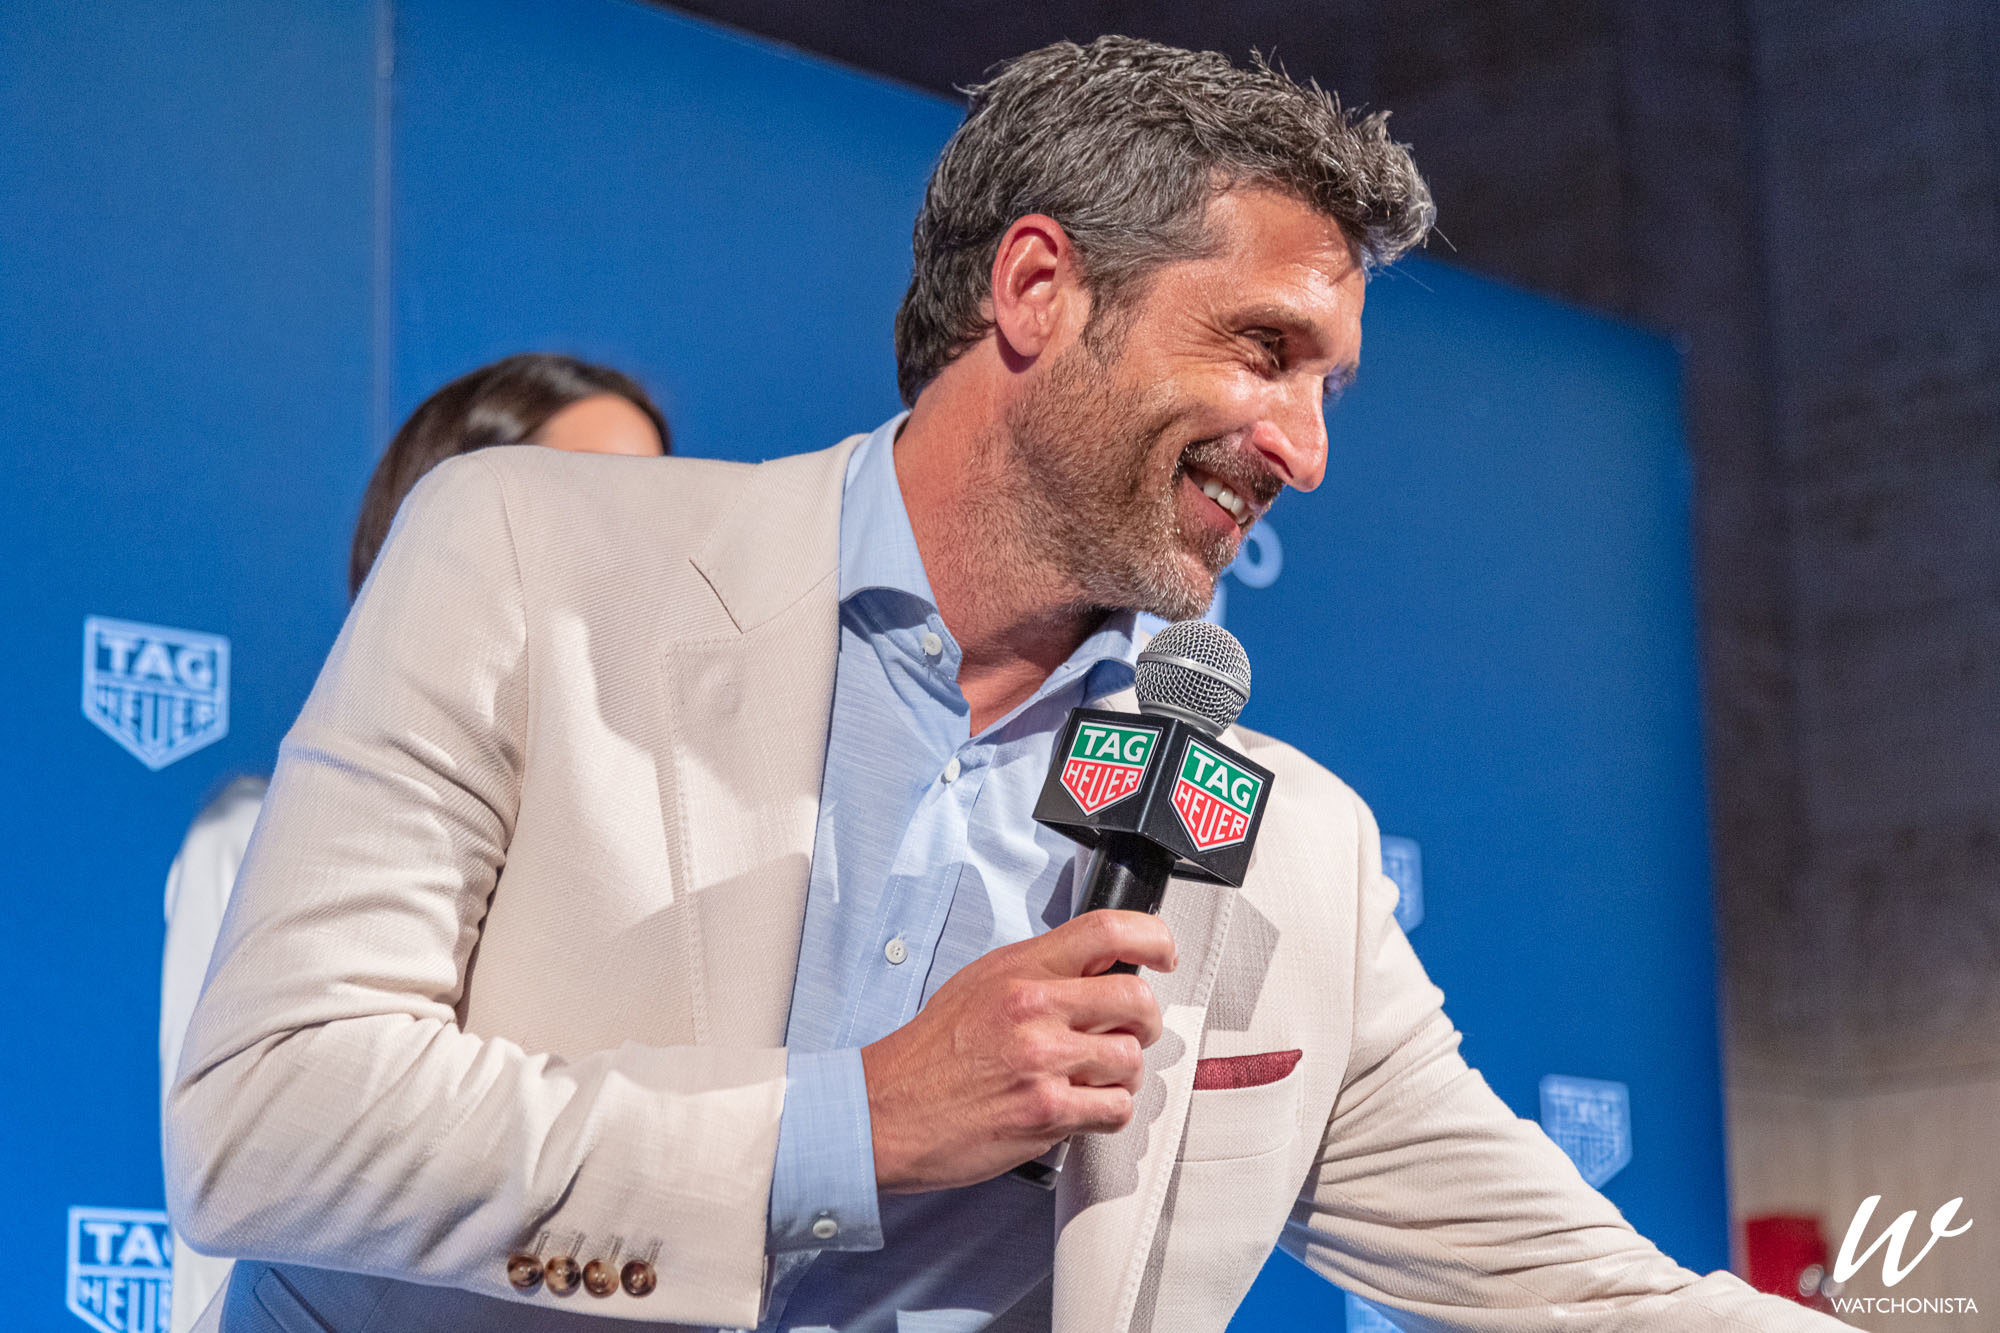 Oh Snap Tag Heuer And Patrick Dempsey Unveil A New 90s Inspired